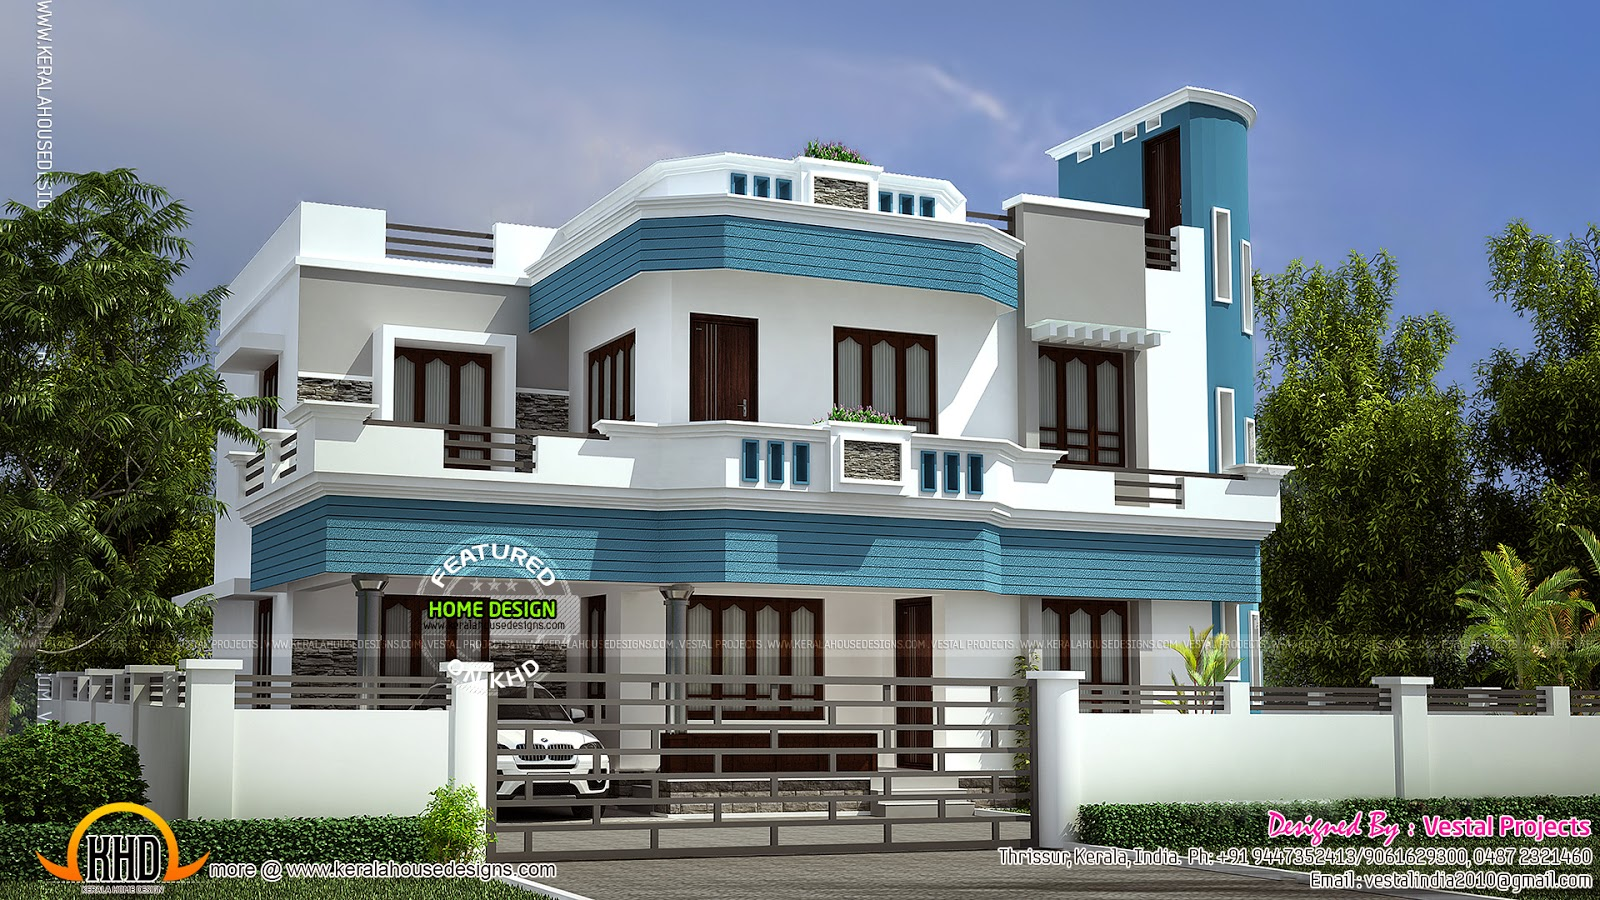 Awesome house by vestal projects kerala home design and for In home design